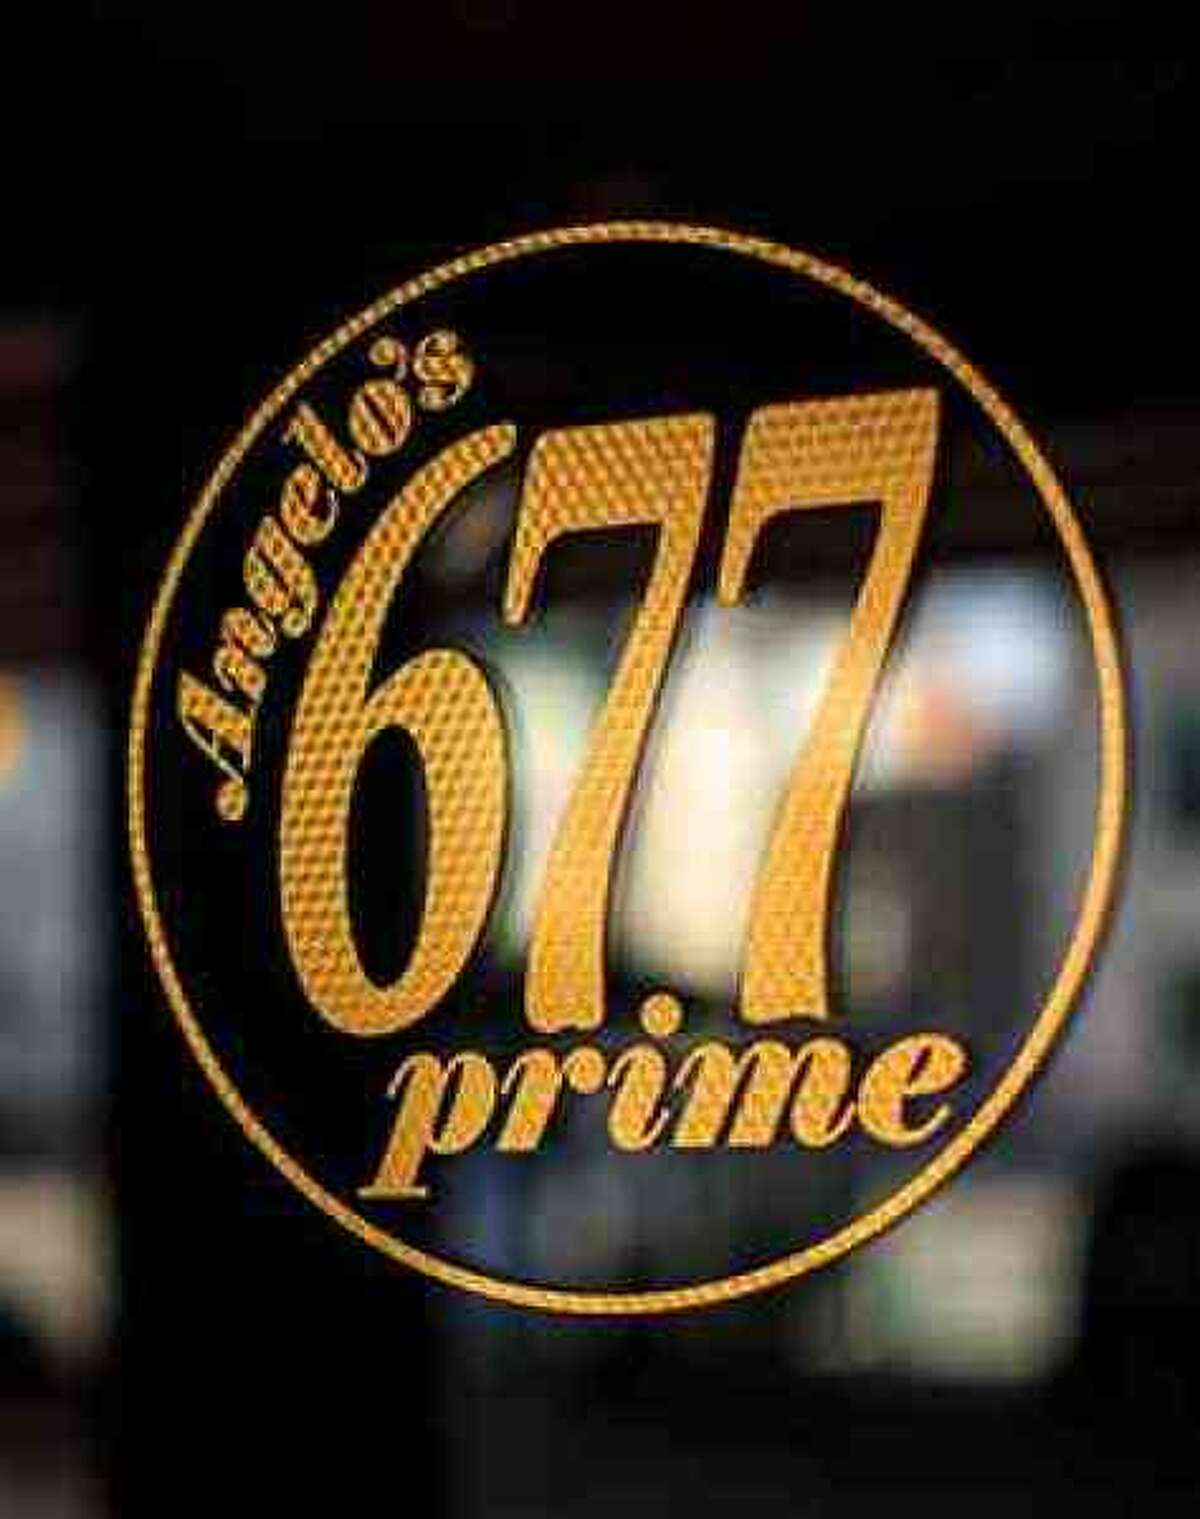 1.Angelo's-677 Prime, Albany. In 2016 you voted that Angelo's-677 Prime in Albany is the best restaurant for a romantic night out! Here you can find a nice array of shellfish, seafood, steaks, salads and much more.